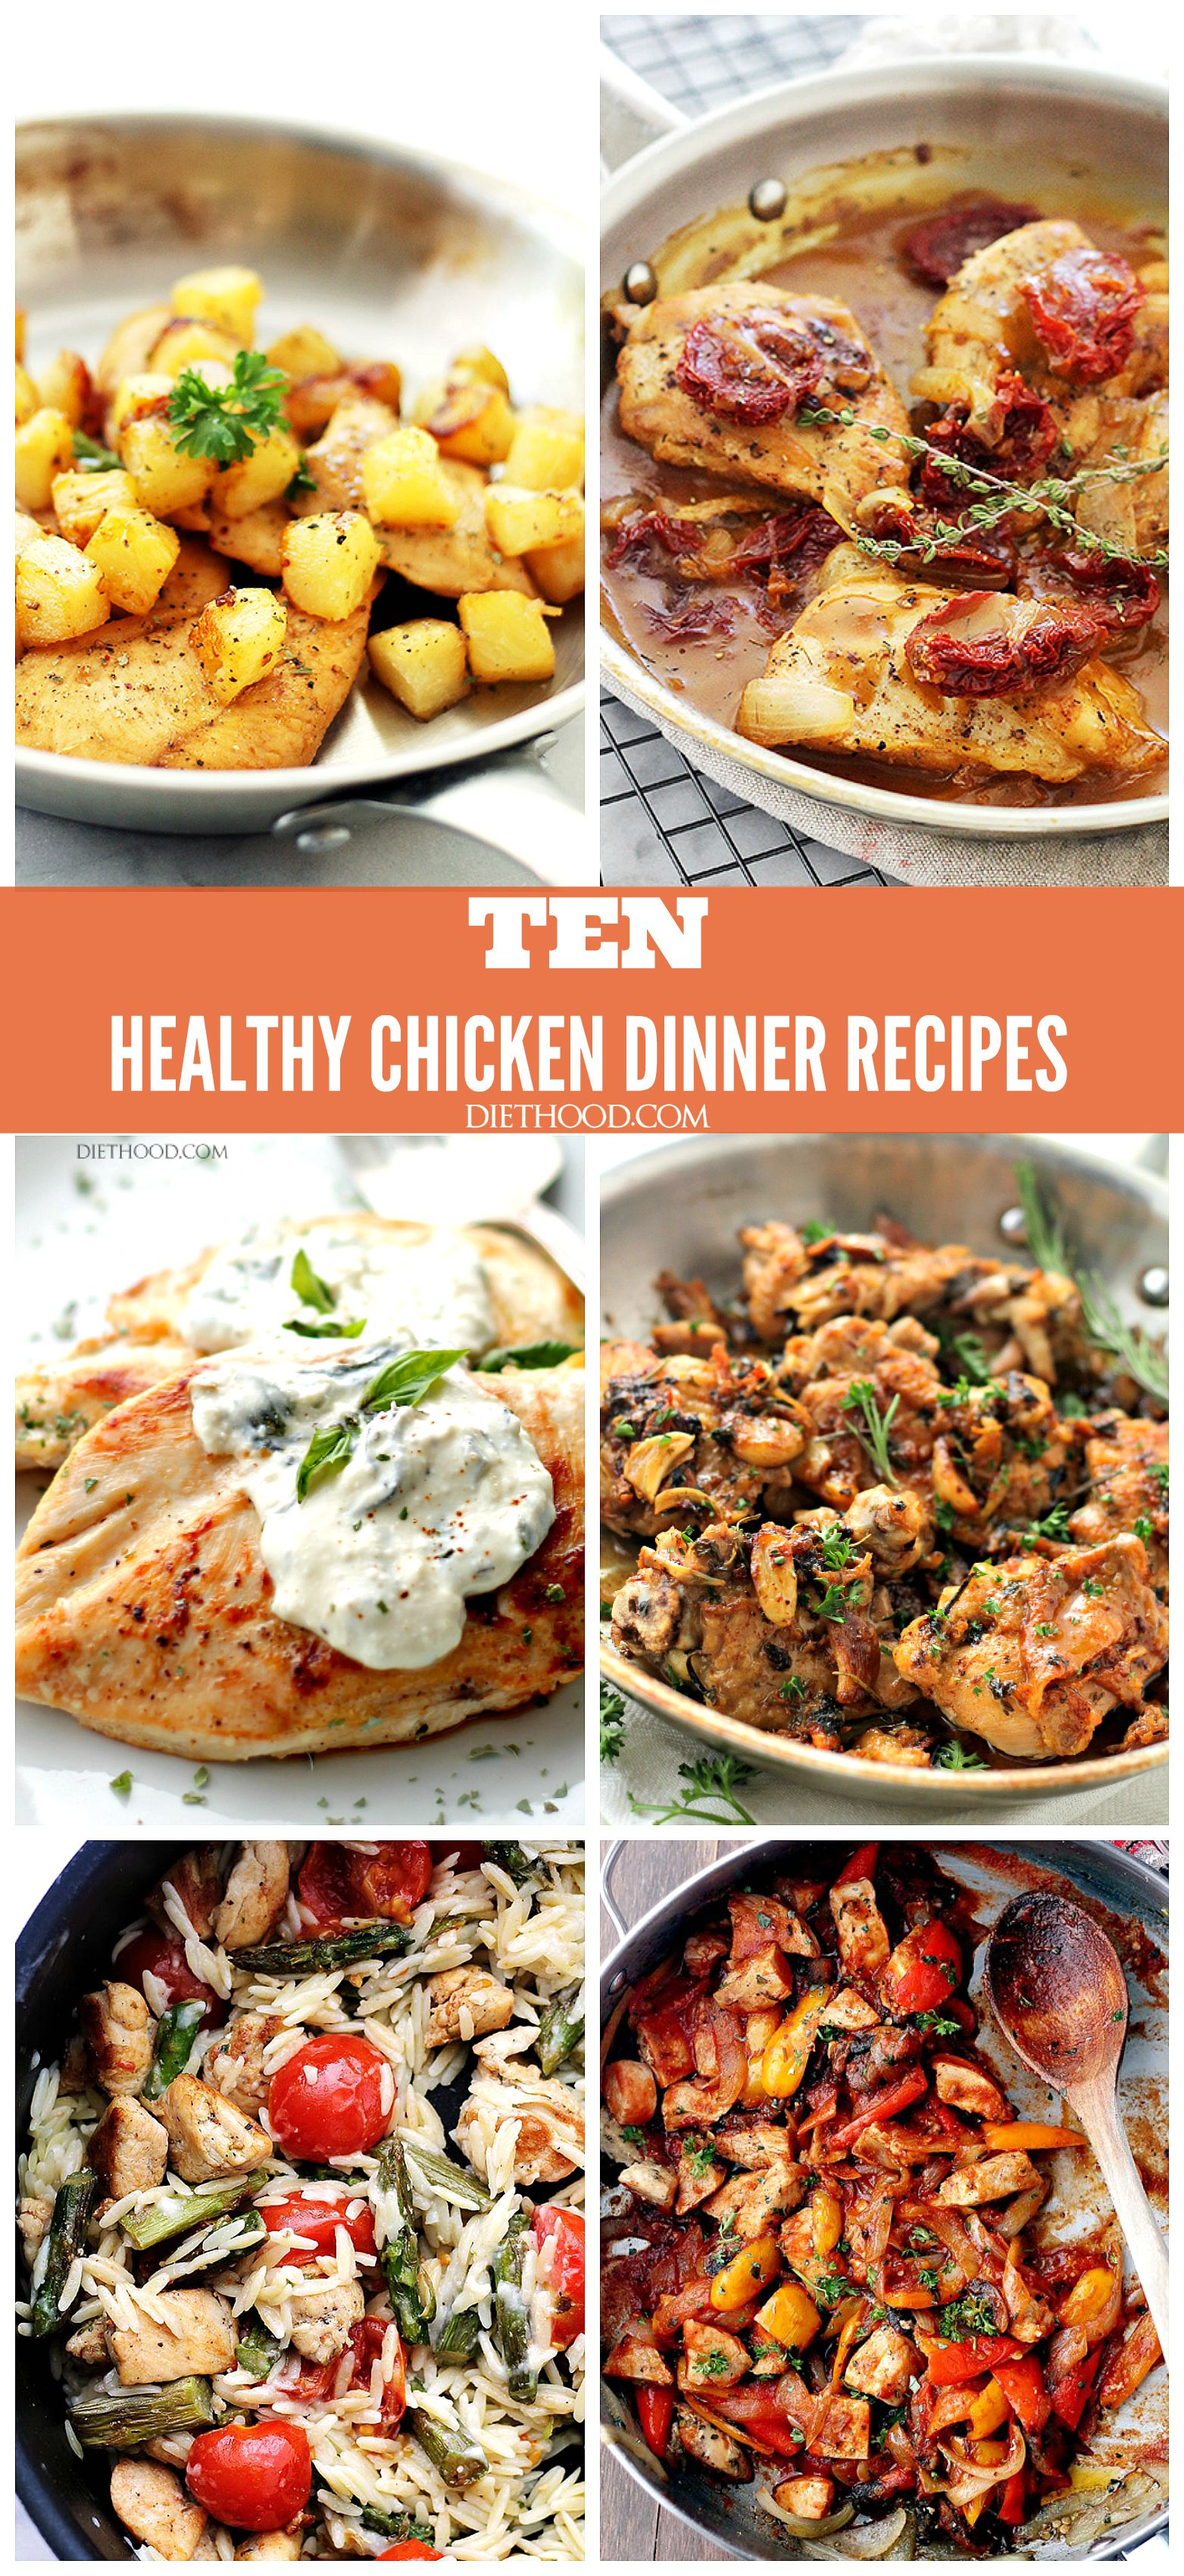 Ten Healthy Chicken Dinner Recipes A Compilation Of My Favorite Chicken Recipes With Un Healthy Dinner Recipes Chicken Healthy Chicken Dinner Chicken Dinner